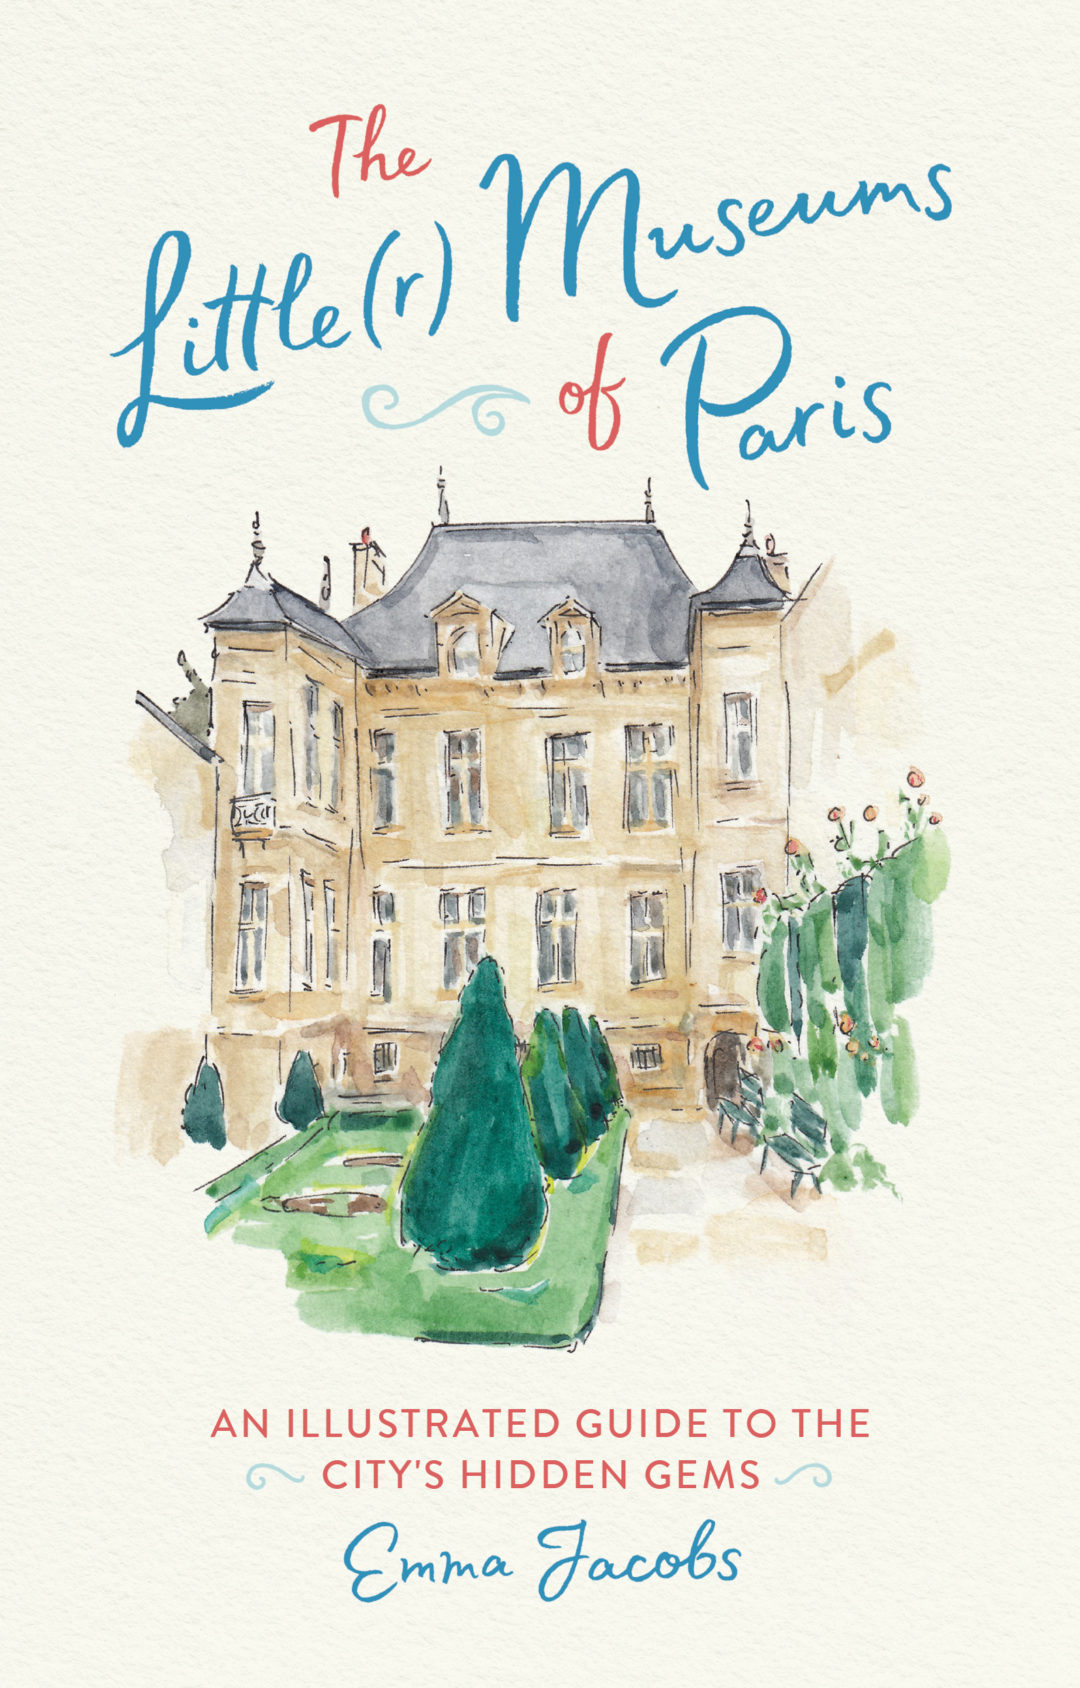 The Little Museums of Paris by Emma Jacobs